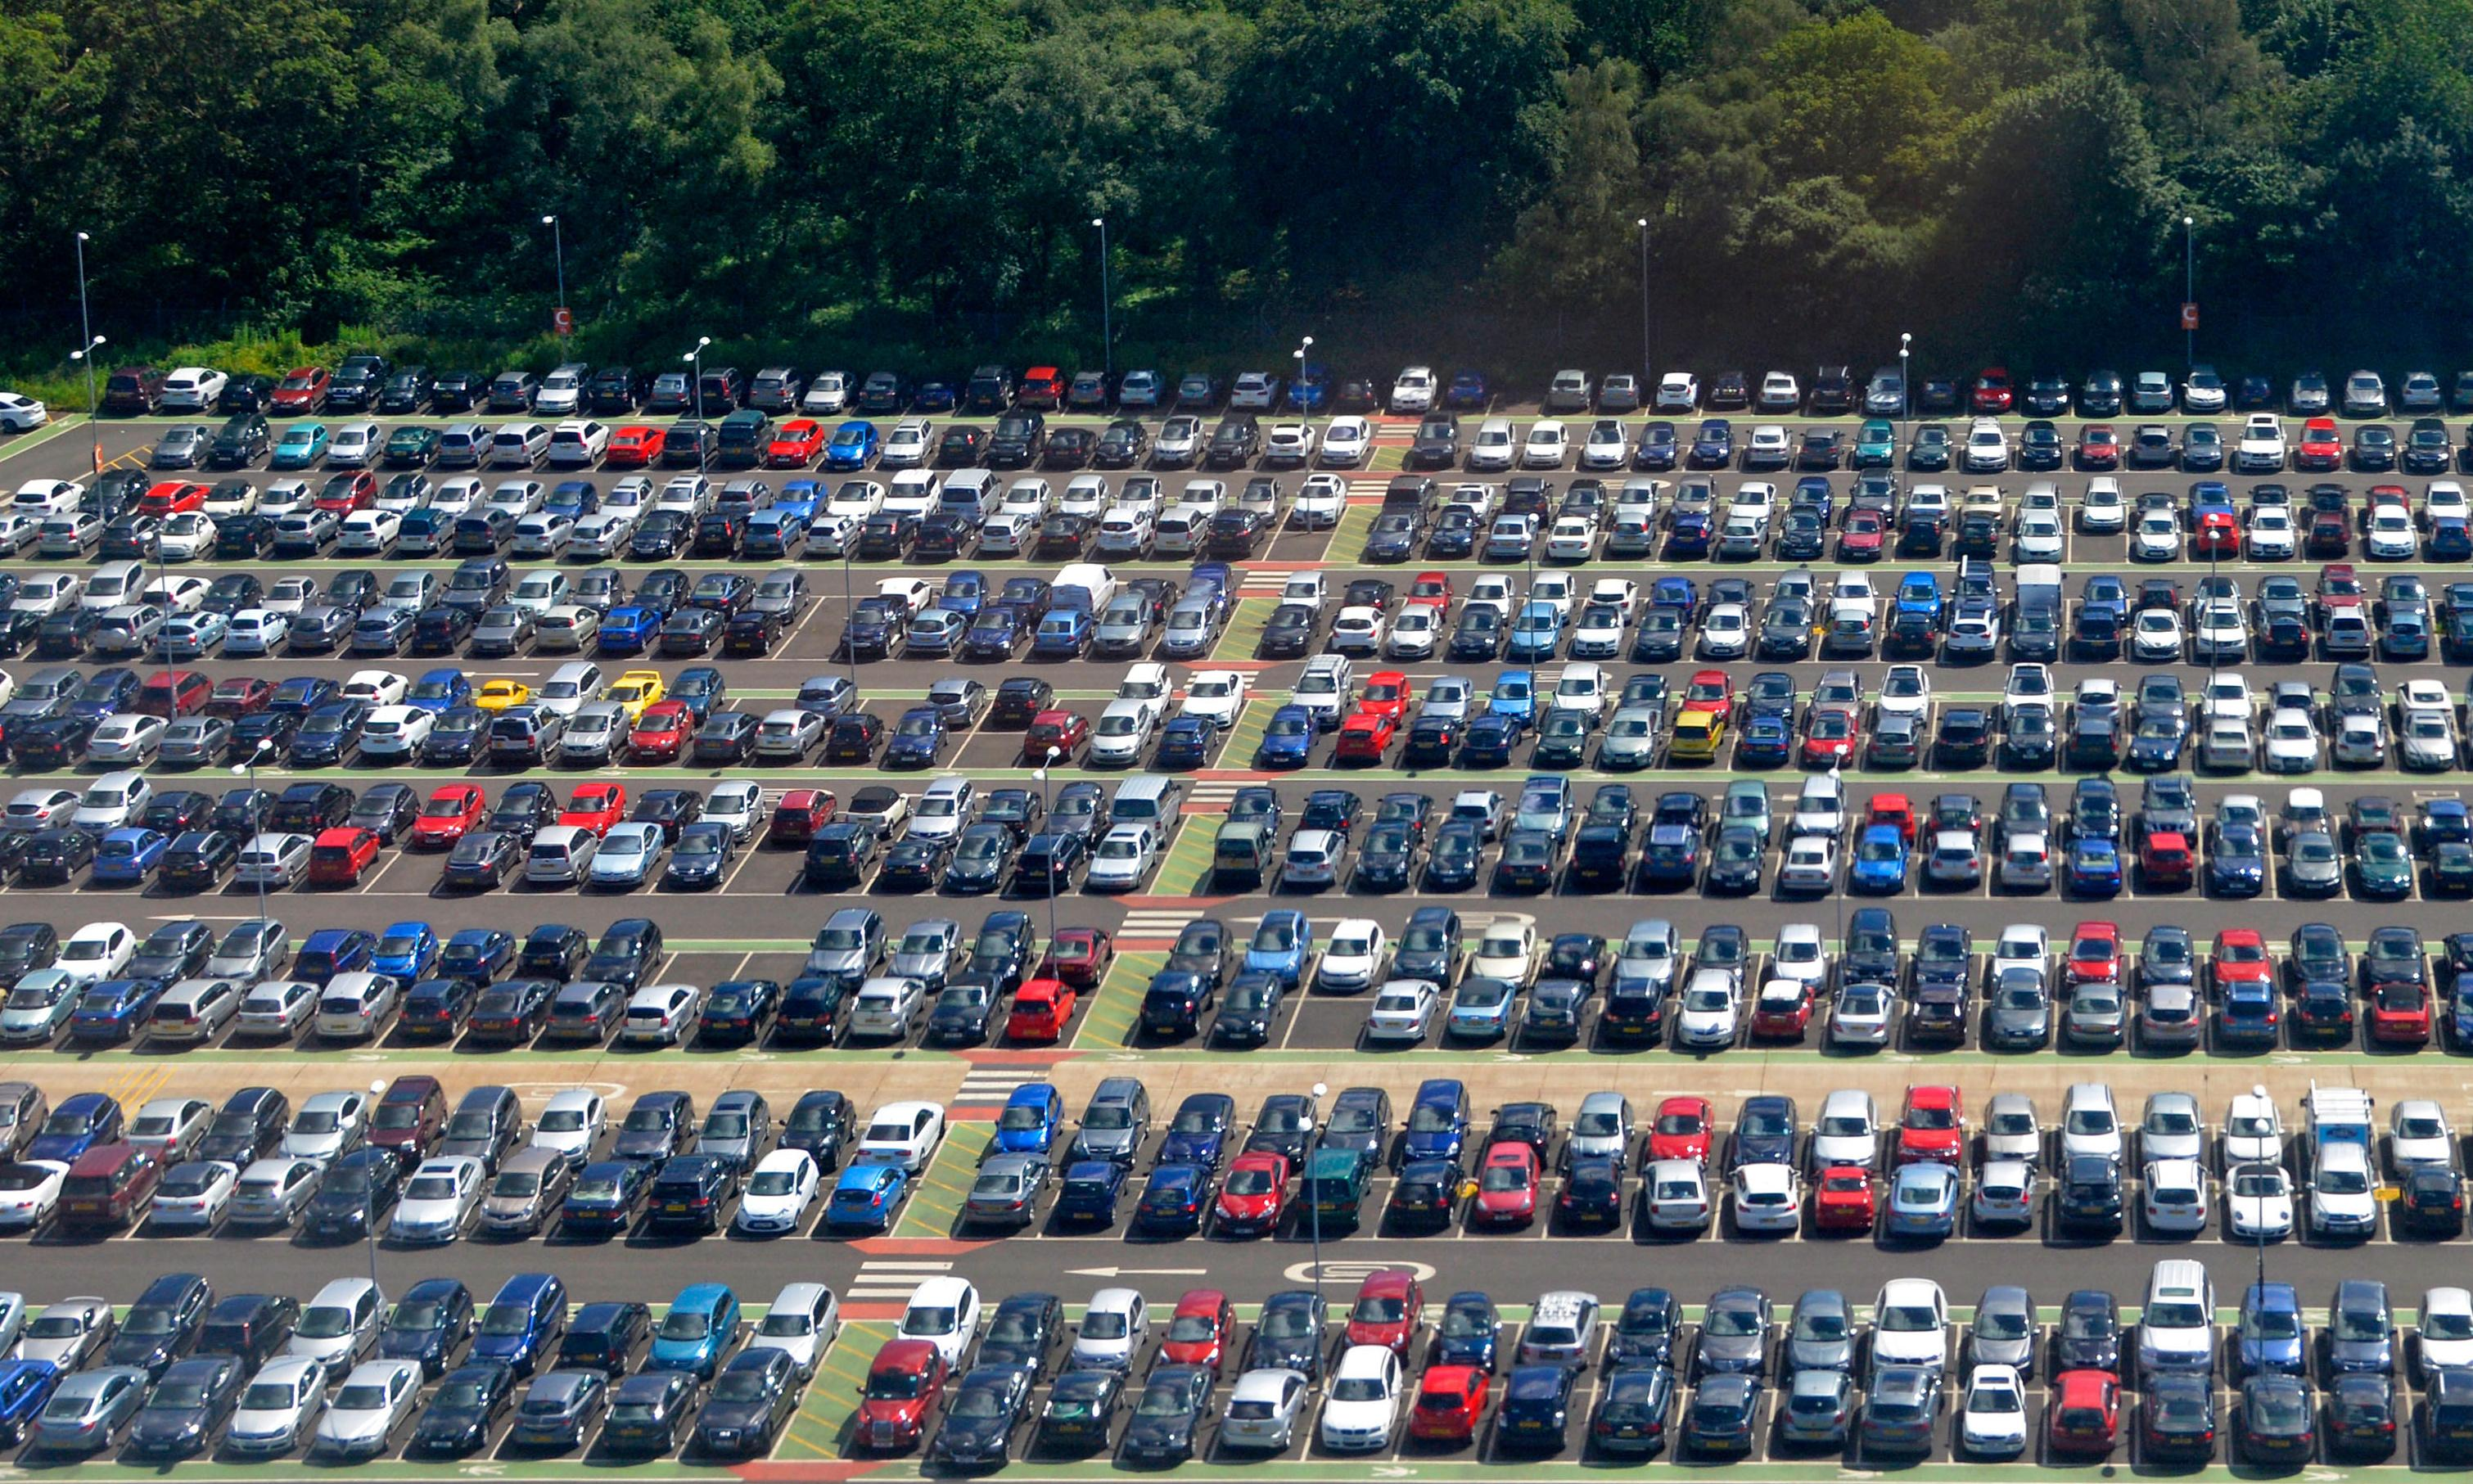 Dinosaurs, dogging and death: the secret life of British car parks